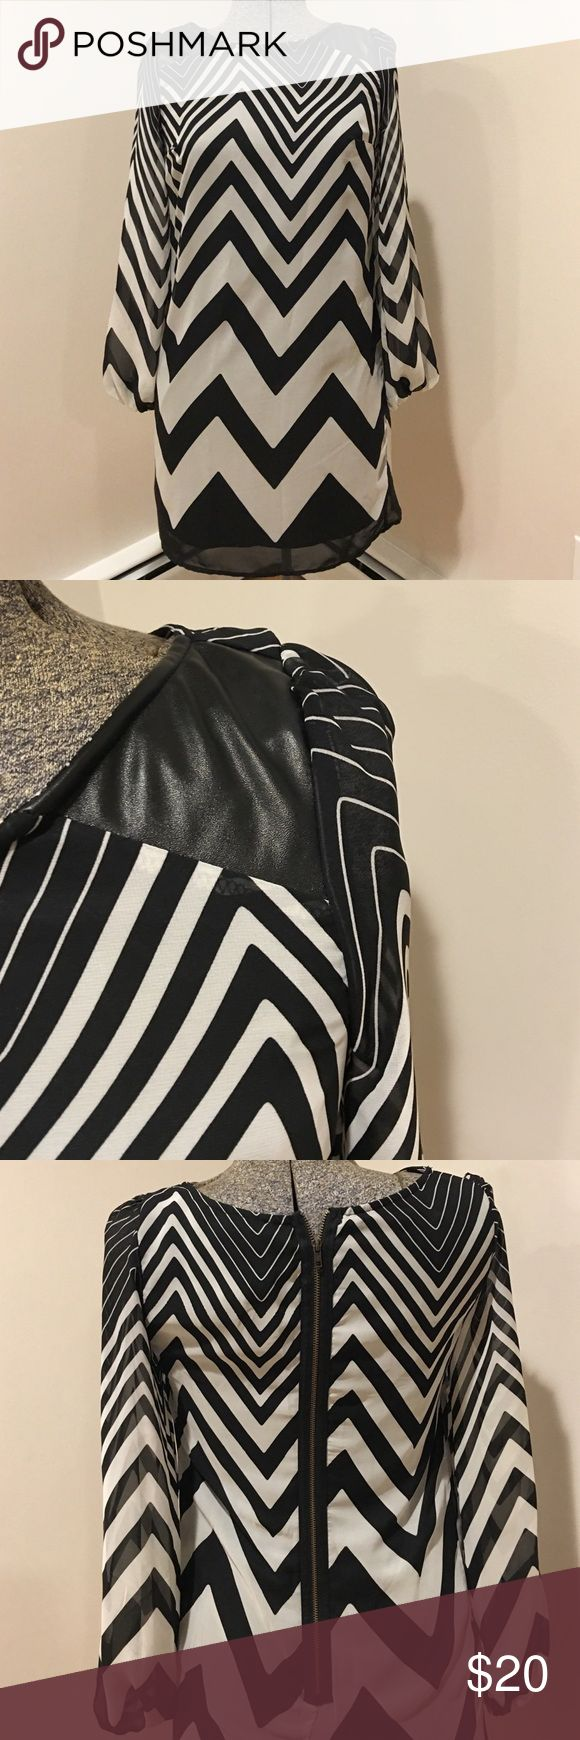 Chevron Dress Chevron Dress, black and white pattern with faux leather accents on shoulders. Zipper up back. Mid thigh length. Long sleeve (sheer). Perfect for any occasion. Dresses Long Sleeve